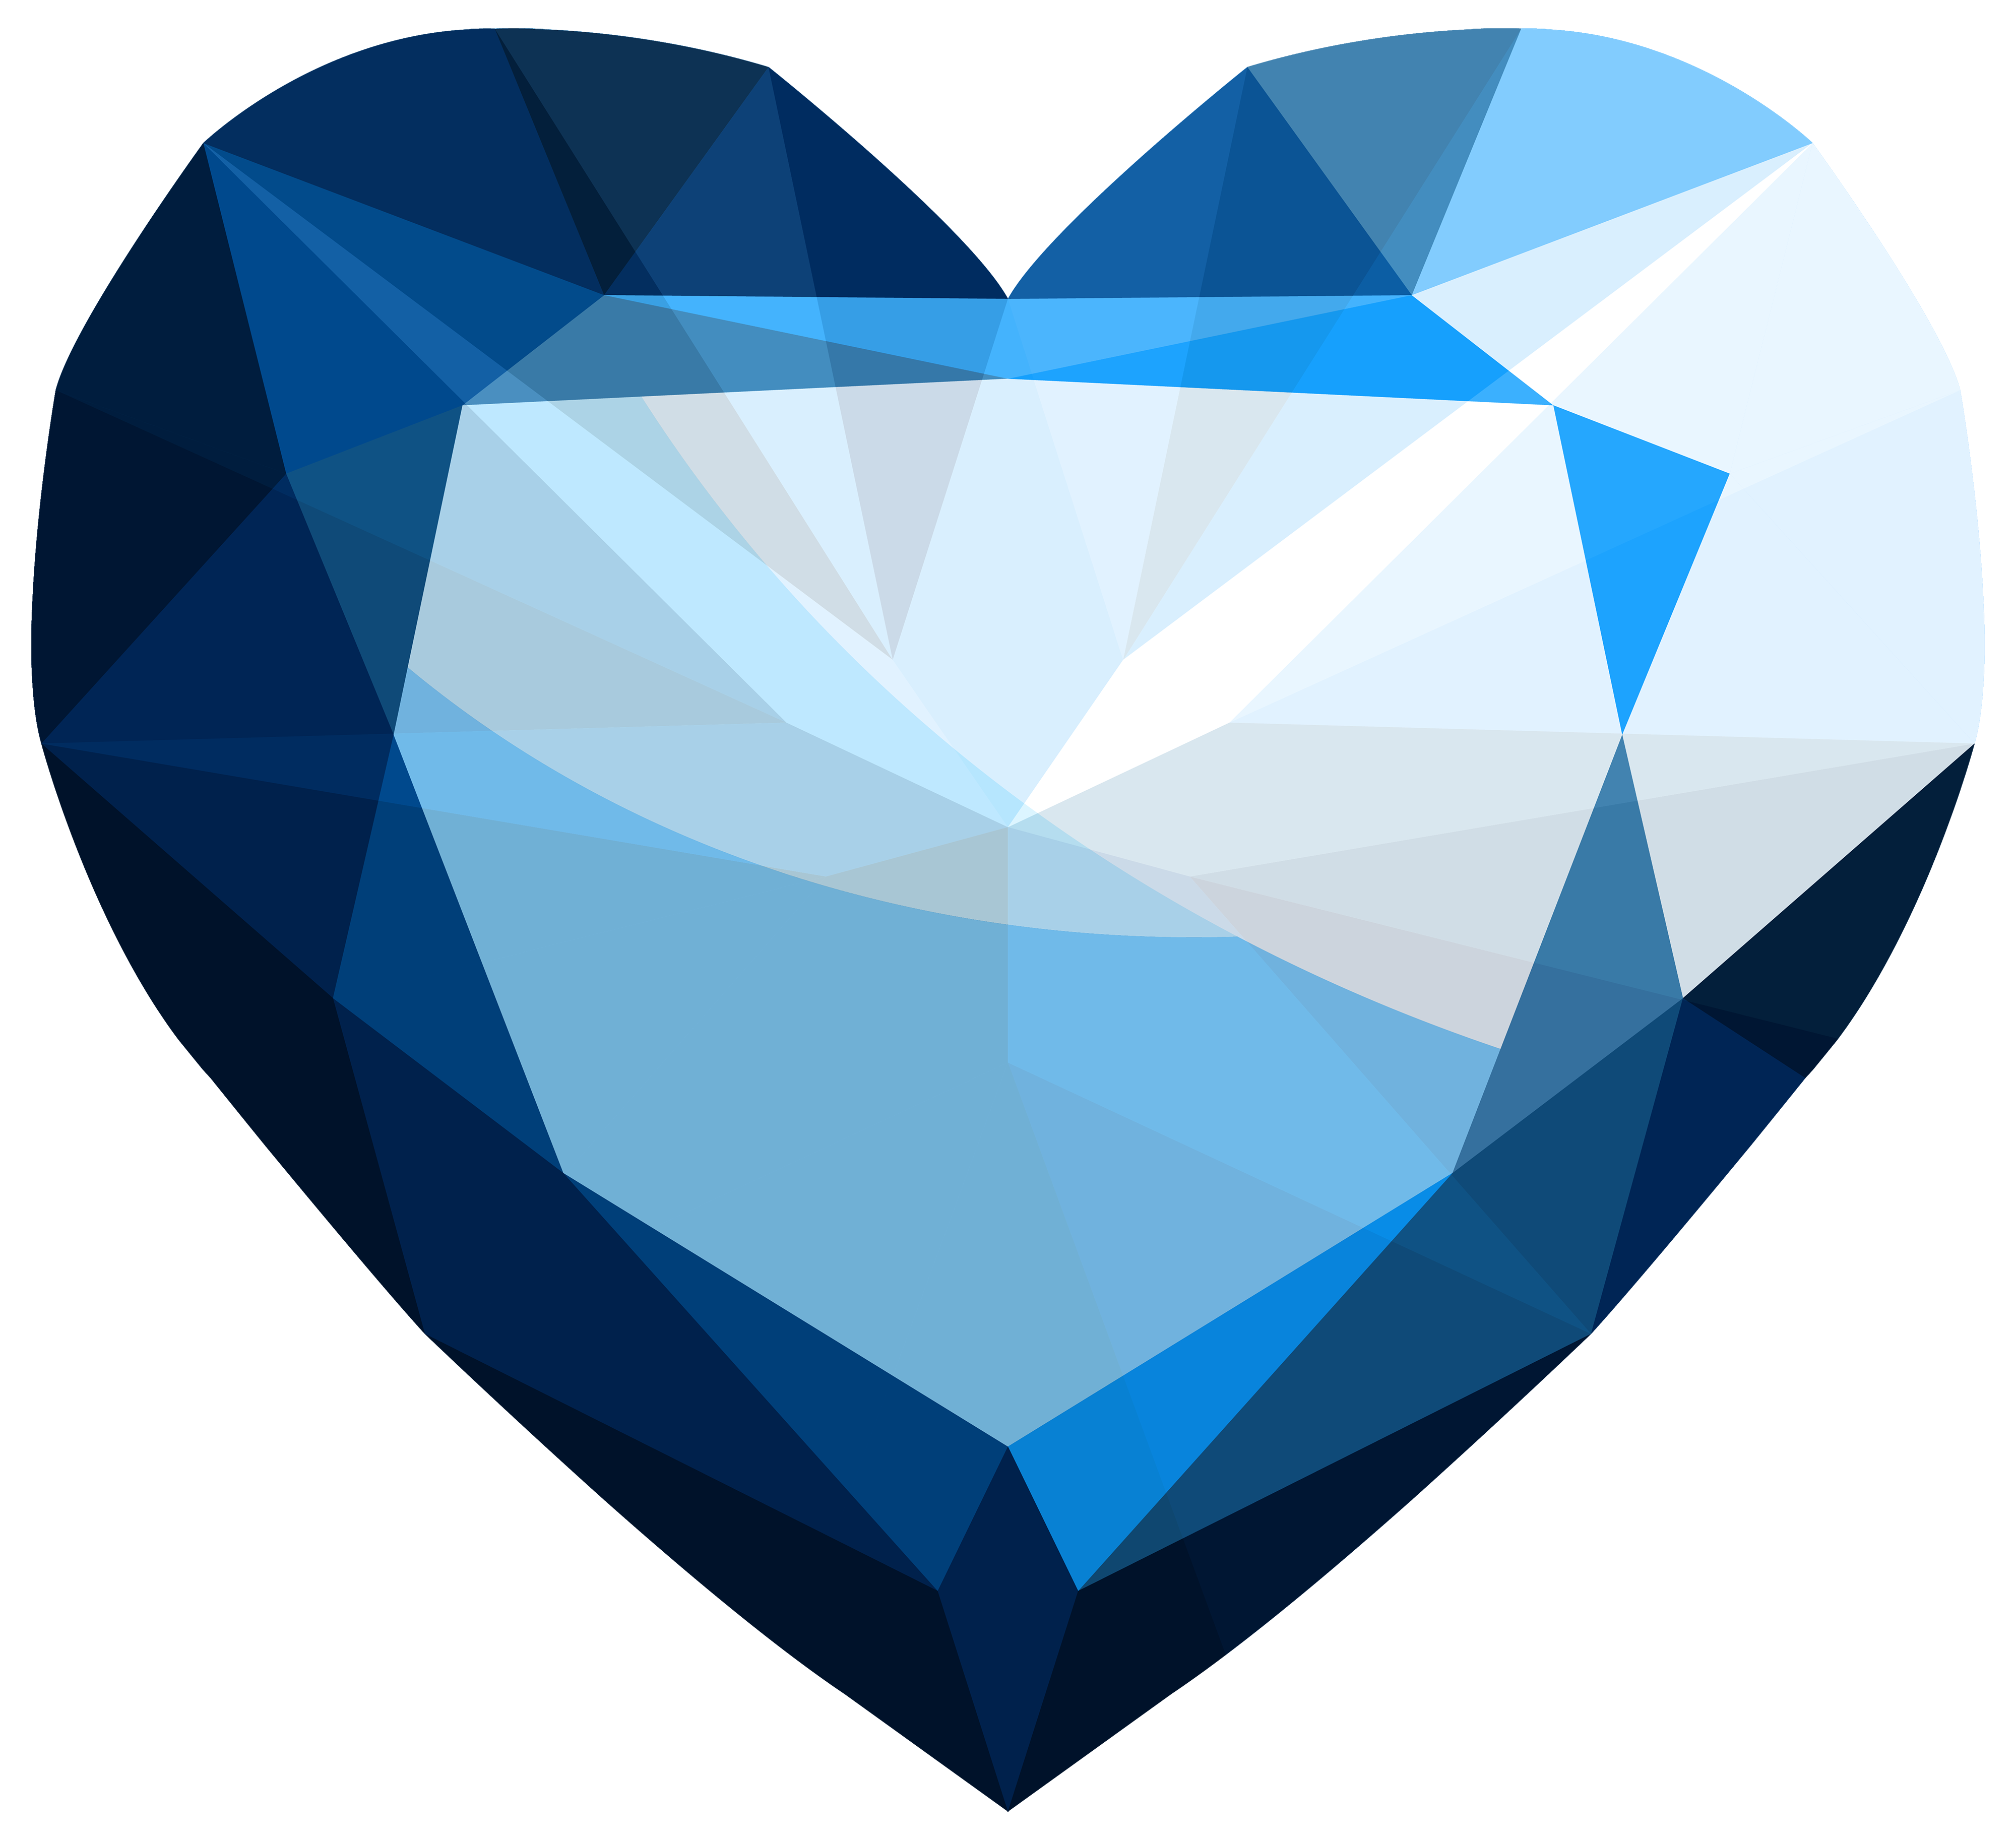 Heart diamond clipart graphic royalty free Sapphire Heart PNG Clipart - Best WEB Clipart graphic royalty free